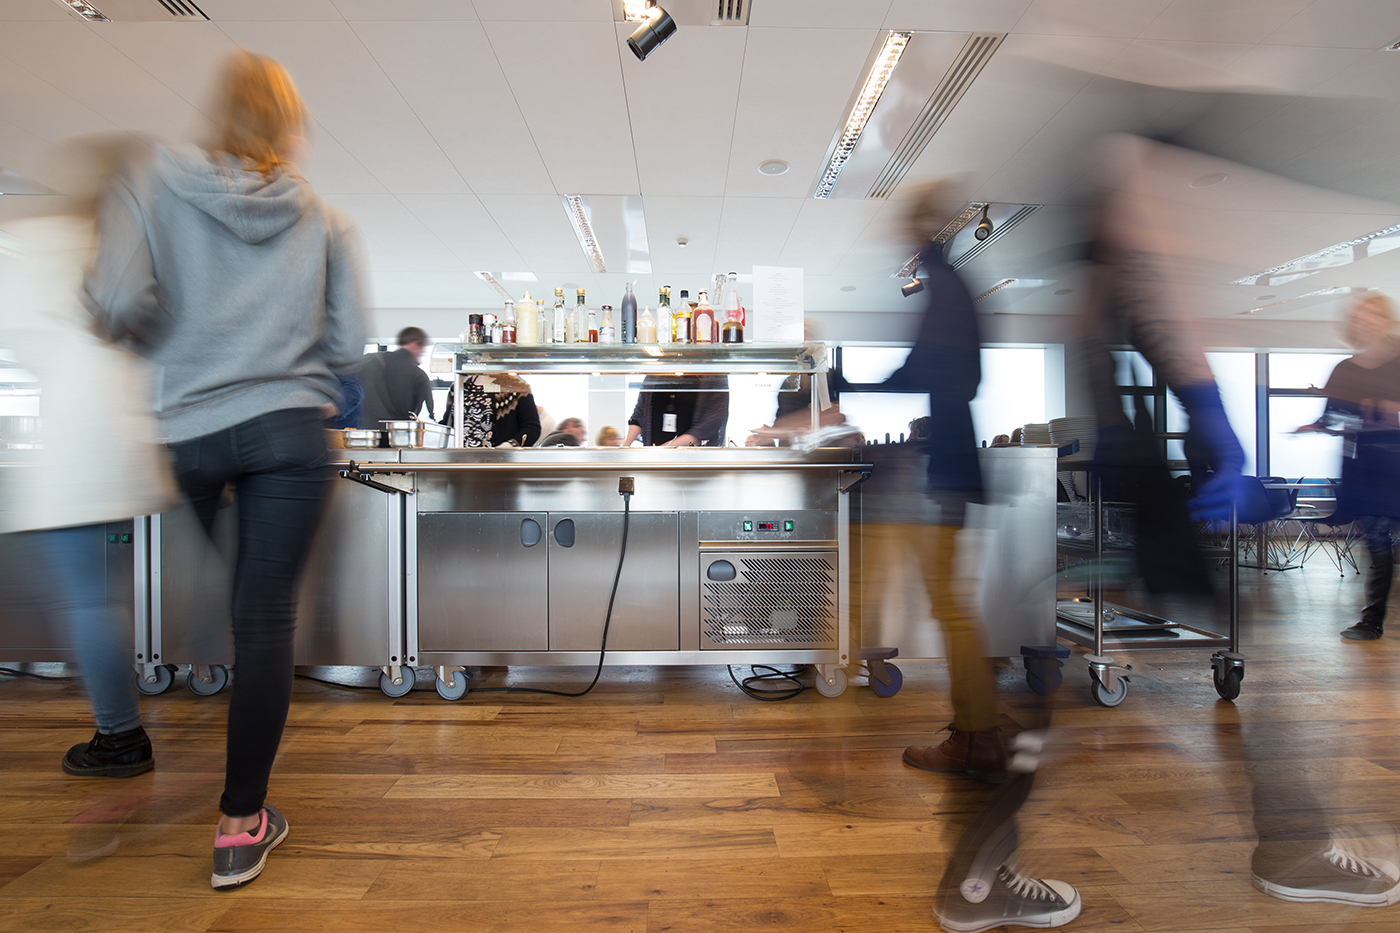 Motion,Blurred,People,At,Lunchtime,In,A,Busy,Canteen